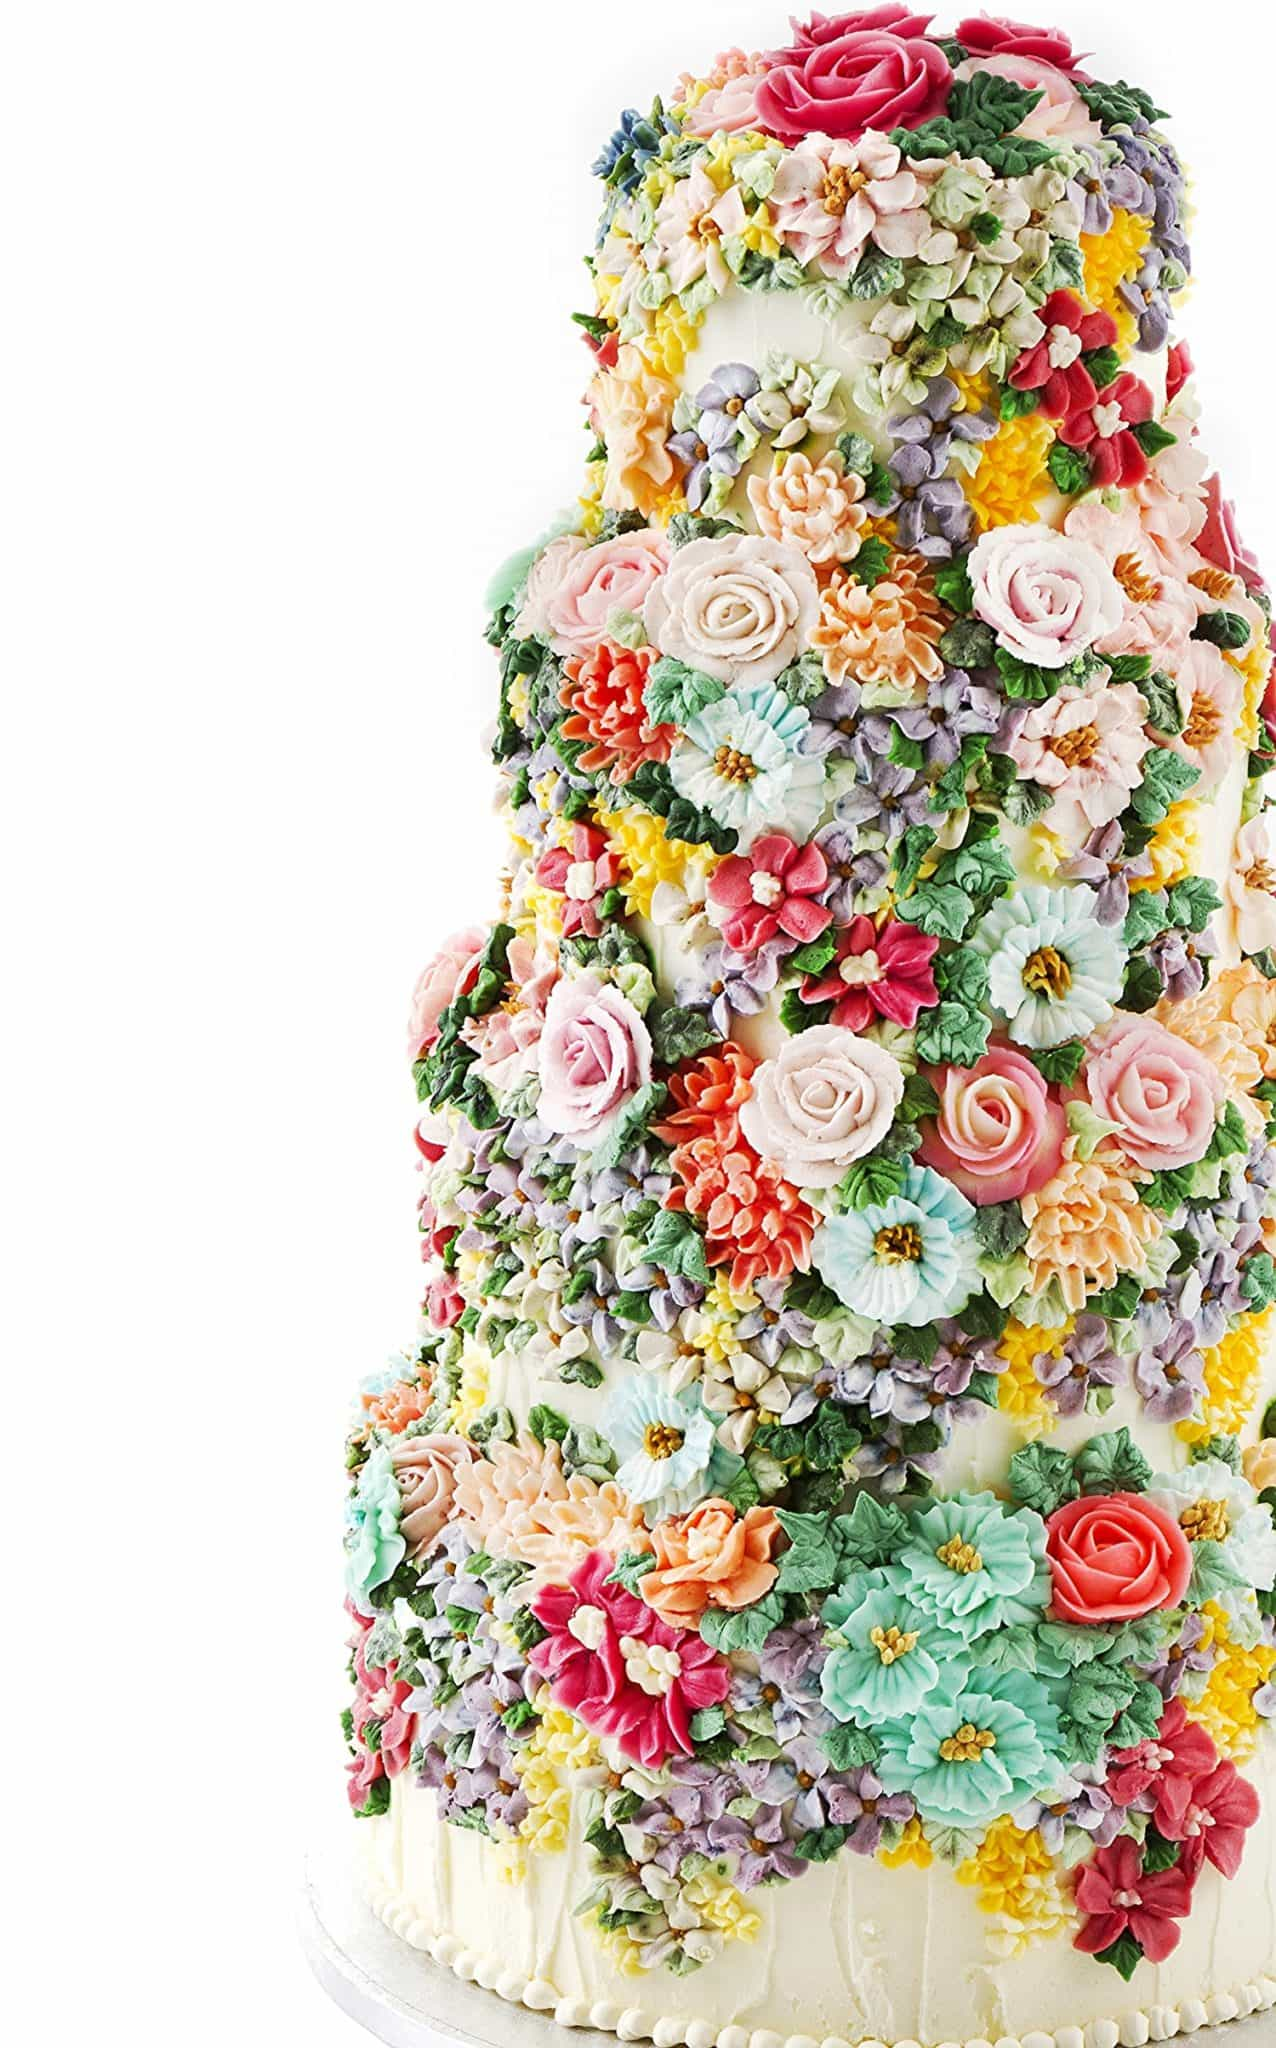 Buttercream wedding cake by Emma Page covered in colourful piped buttercream flowers